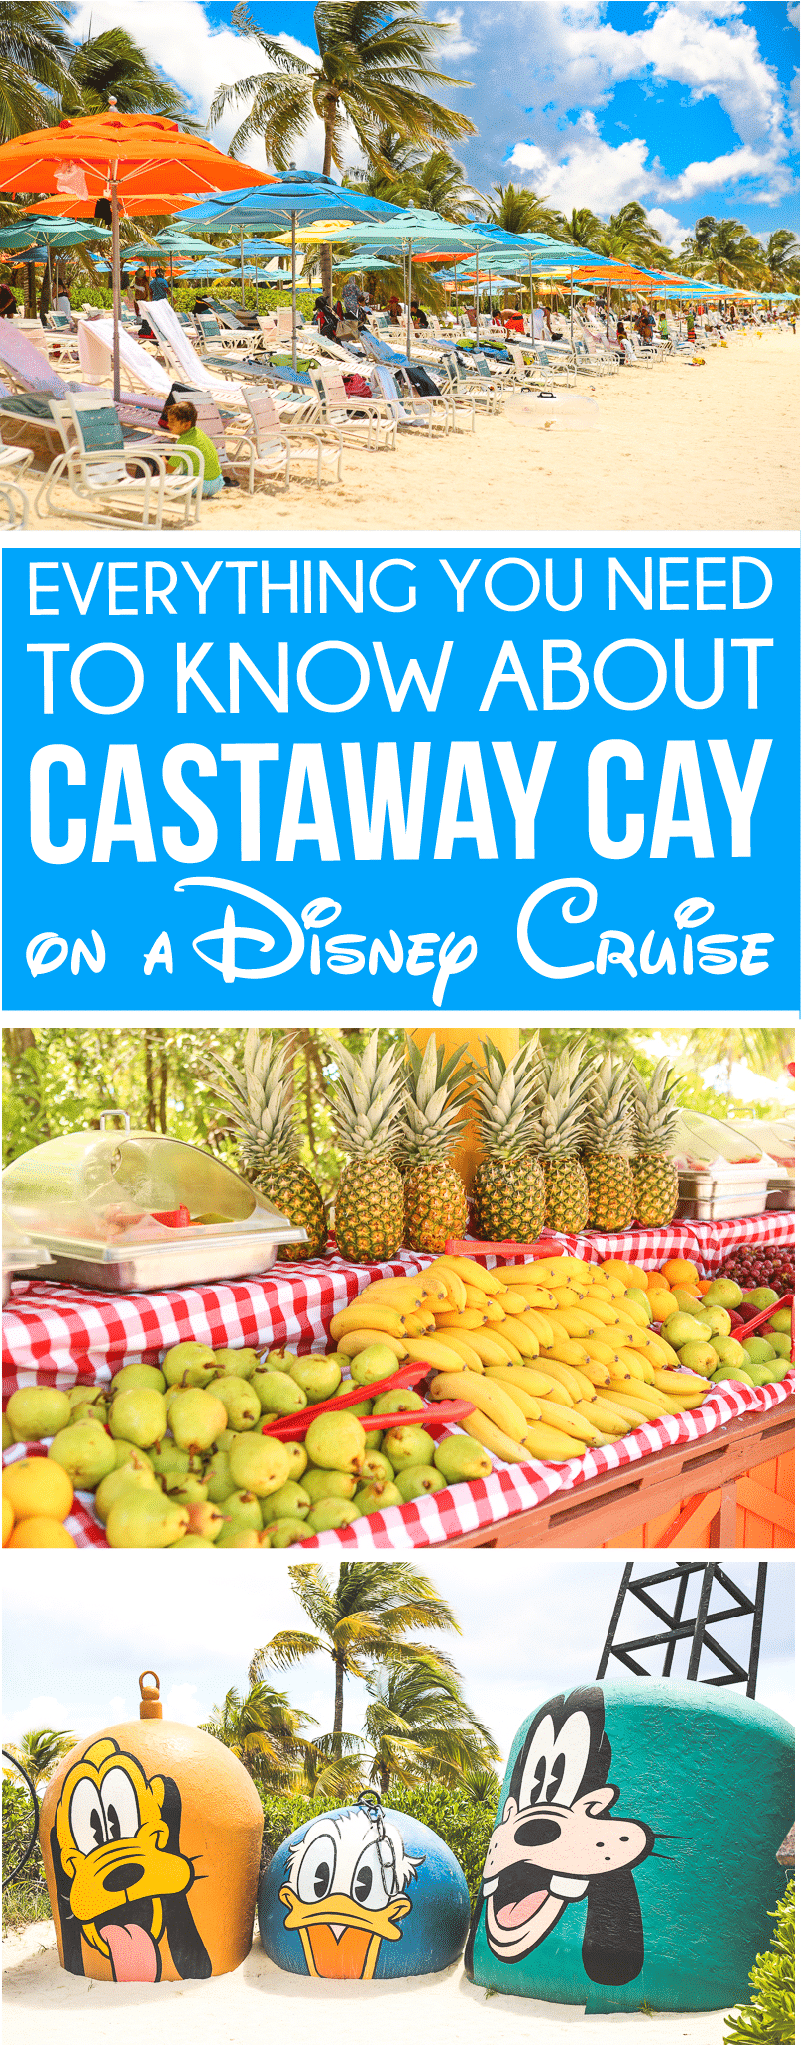 Insider tips for visiting Disney Castaway Cay with kids! Everything from the food that's included to activities to do and even how to spend some adult time at Serenity Bay! Tons of other great Disney Cruise secrets too! via @playpartyplan